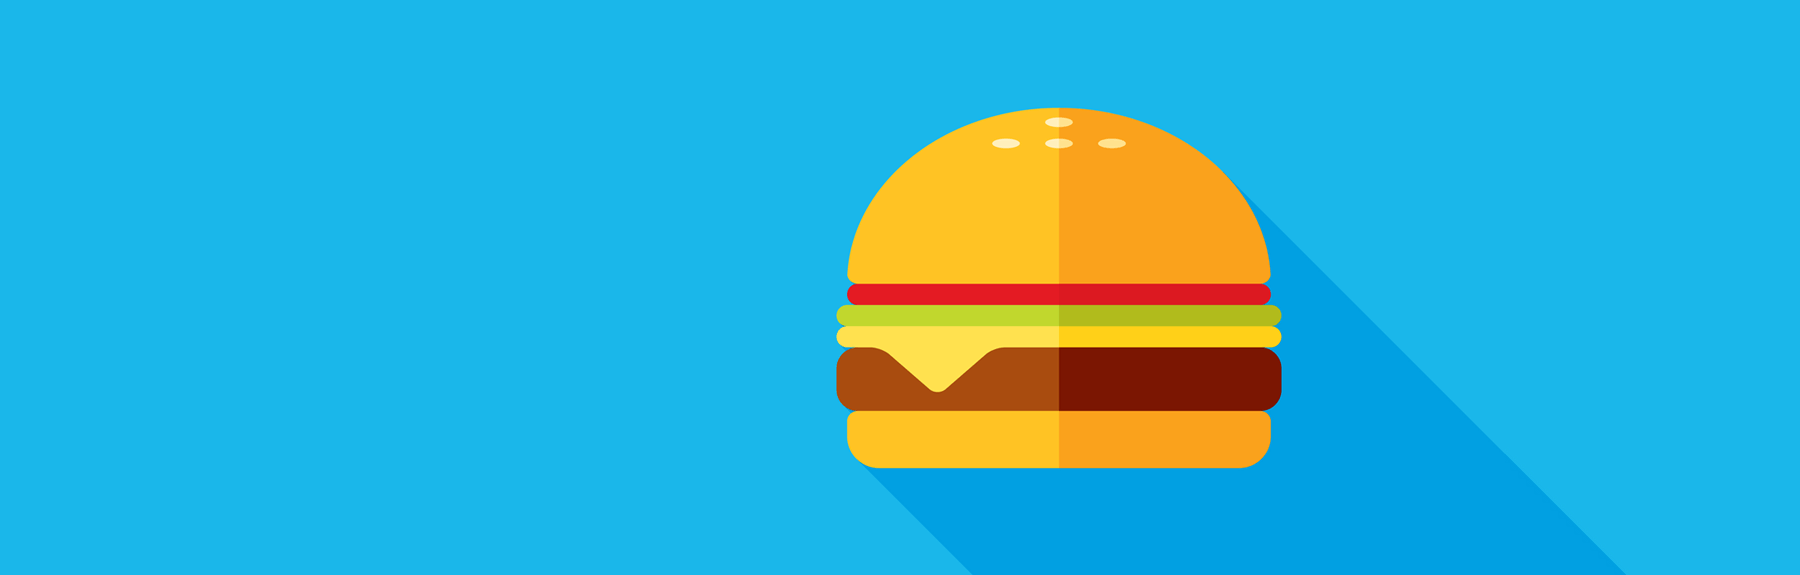 hamburger-navigation-alternatives-header